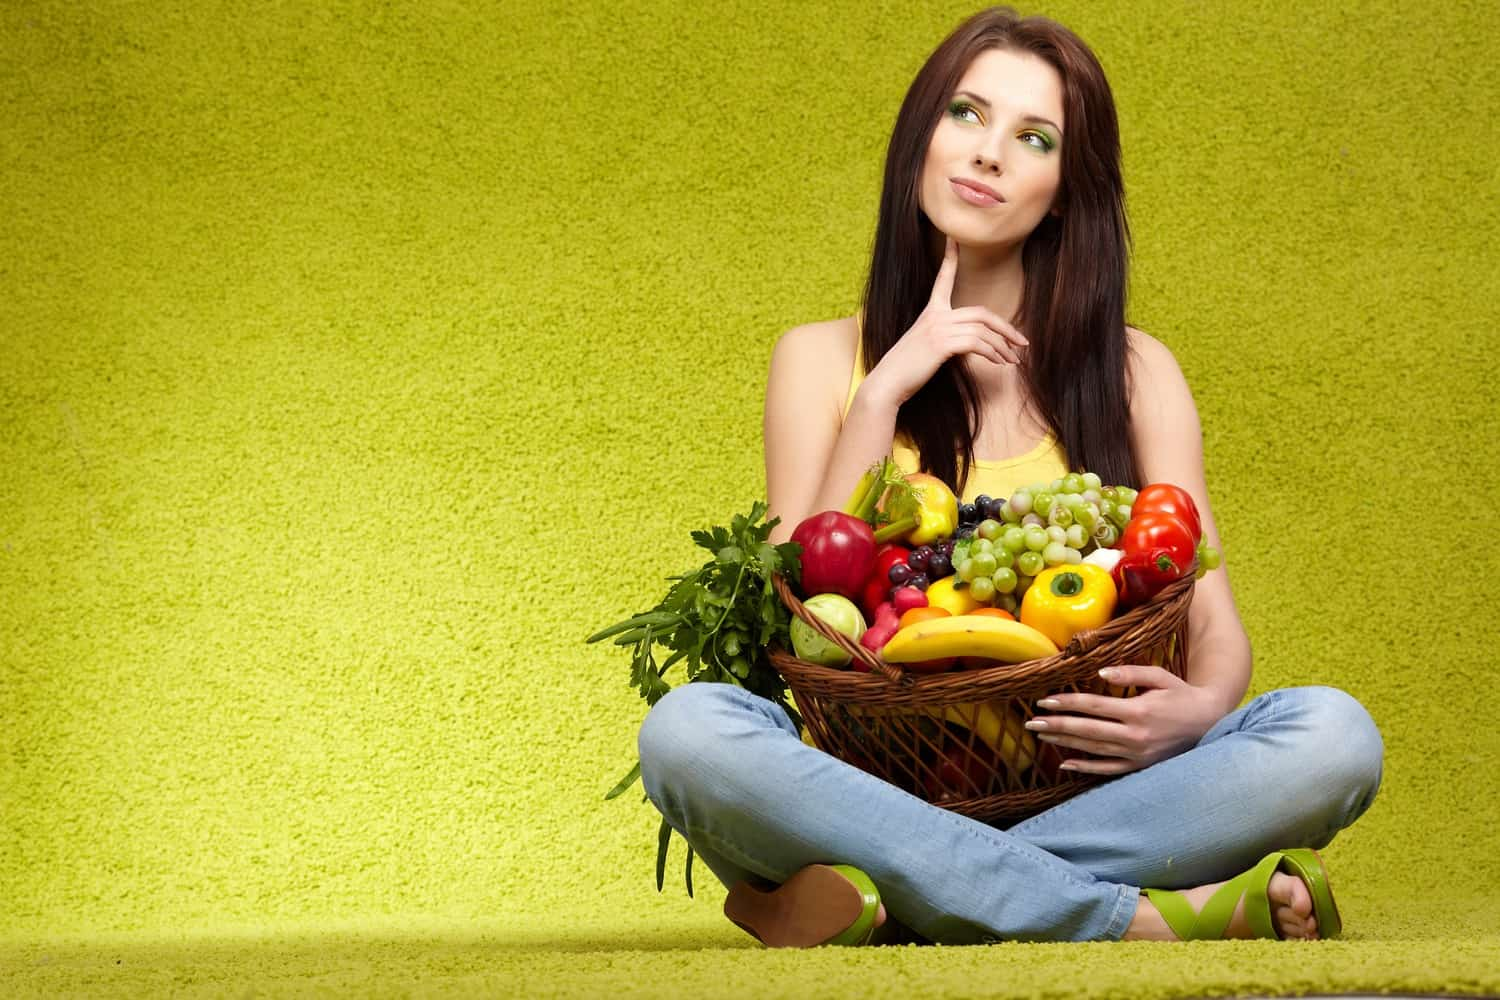 A woman with a basket of fruit and vegetables.